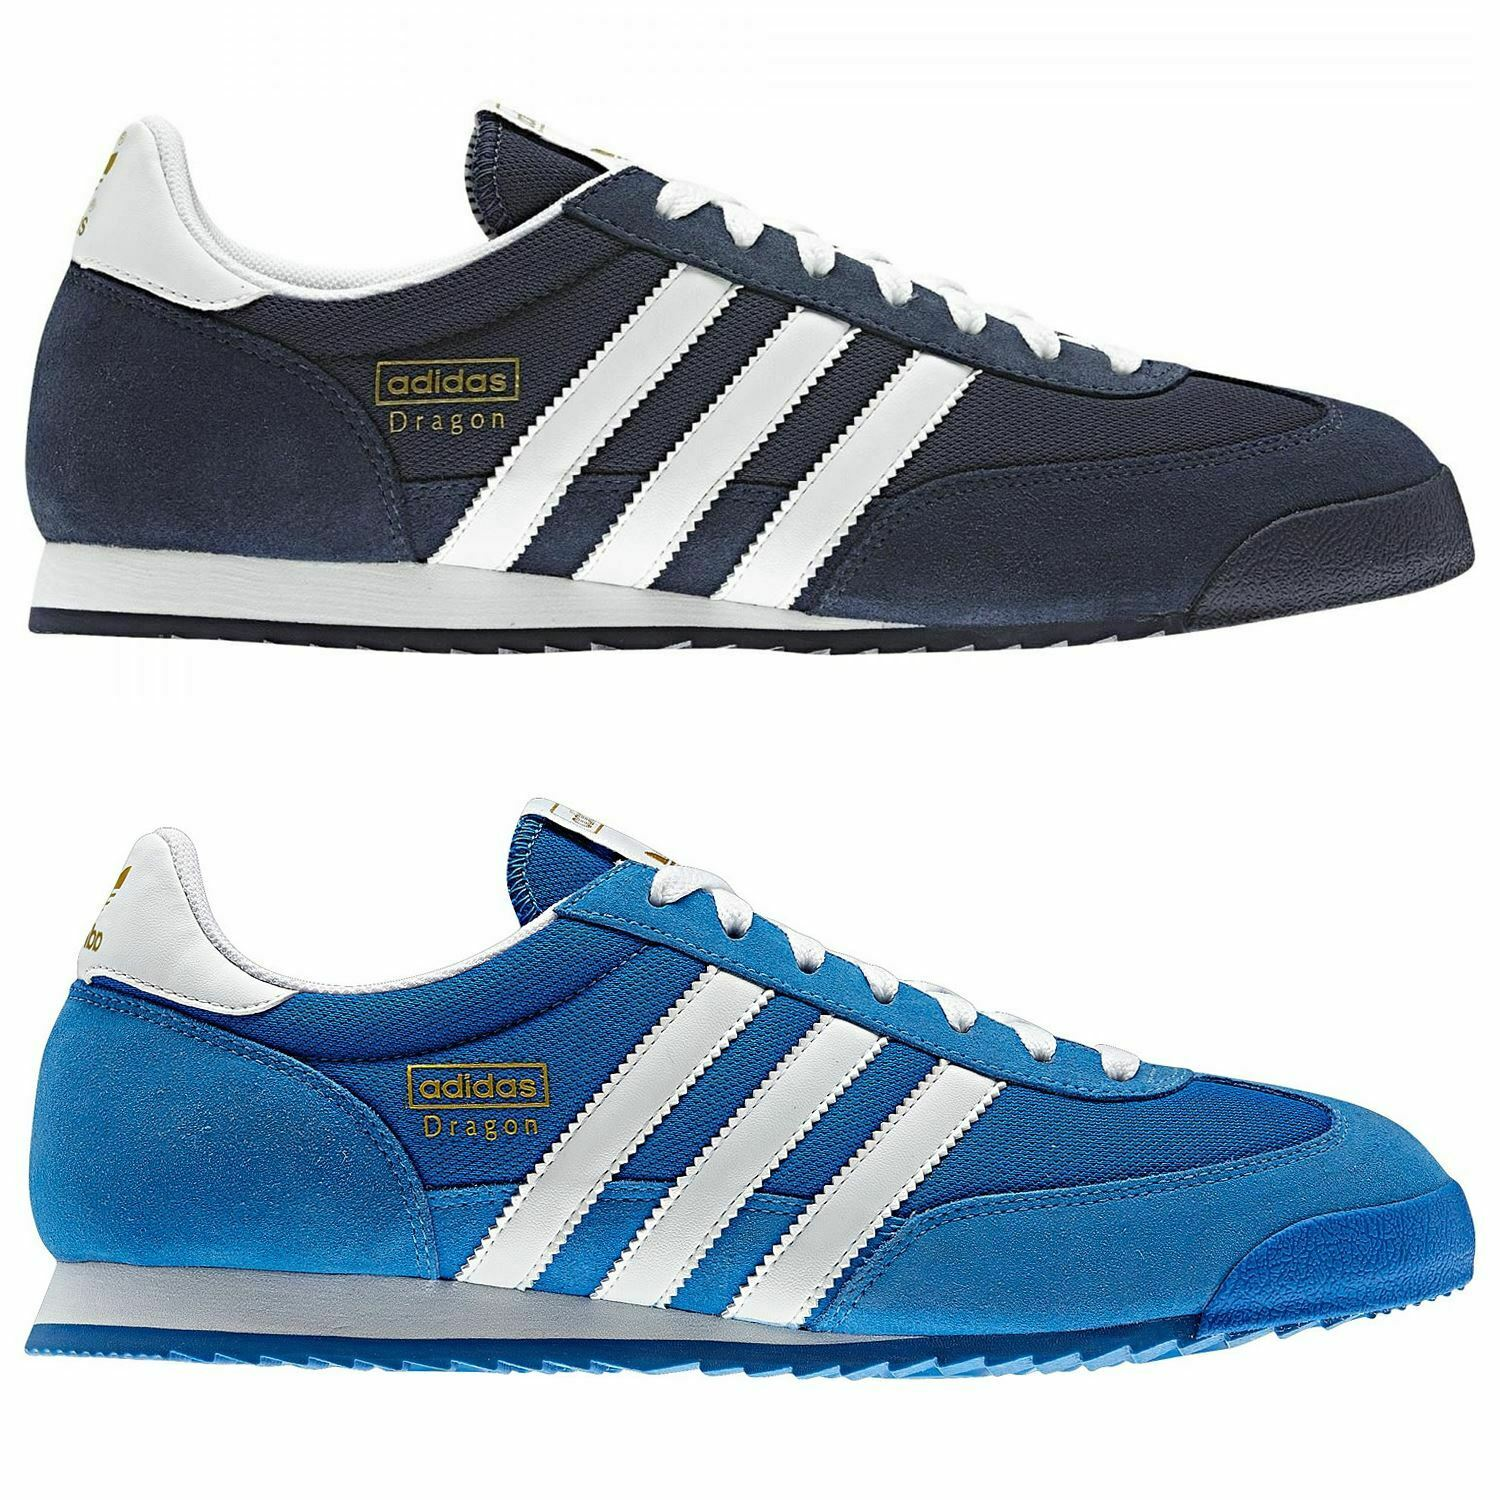 Details zu ✅24hr DELIVERY✅ ADIDAS DRAGON MENS SPORTS TRAINERS ORIGINALS rrp £79